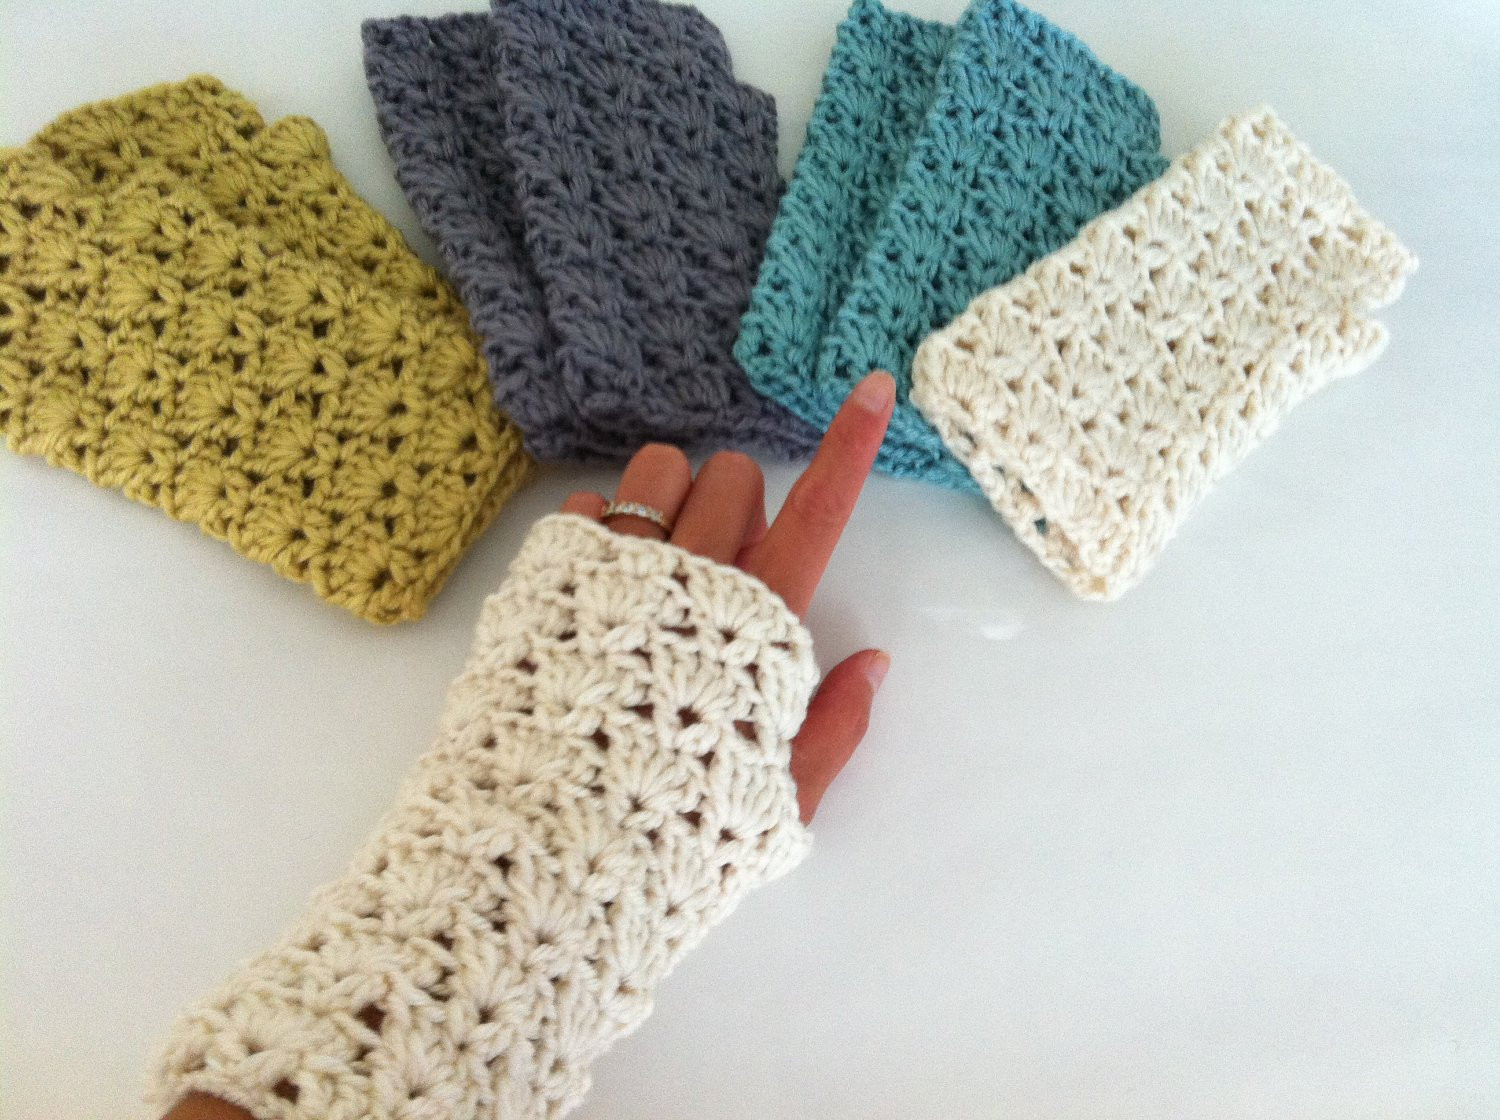 Crochet Mittens Inspirational Crochet Shells Fingerless Gloves Crochet Wrist Warmer Of Brilliant 48 Pictures Crochet Mittens